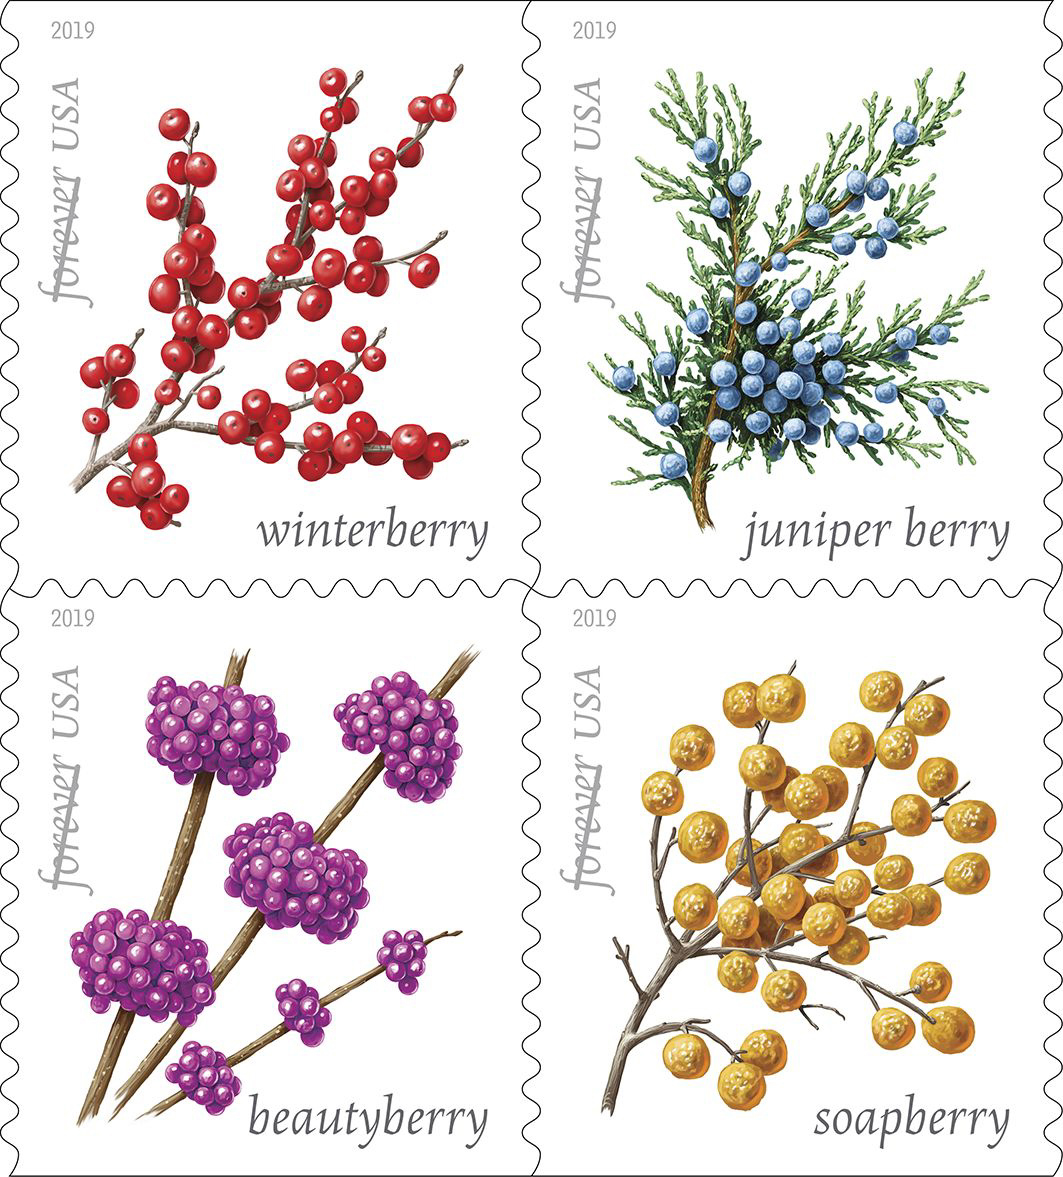 2019 Christmas Stamps.Usps New Stamp Issues 2019 On Stampnewsnow Com